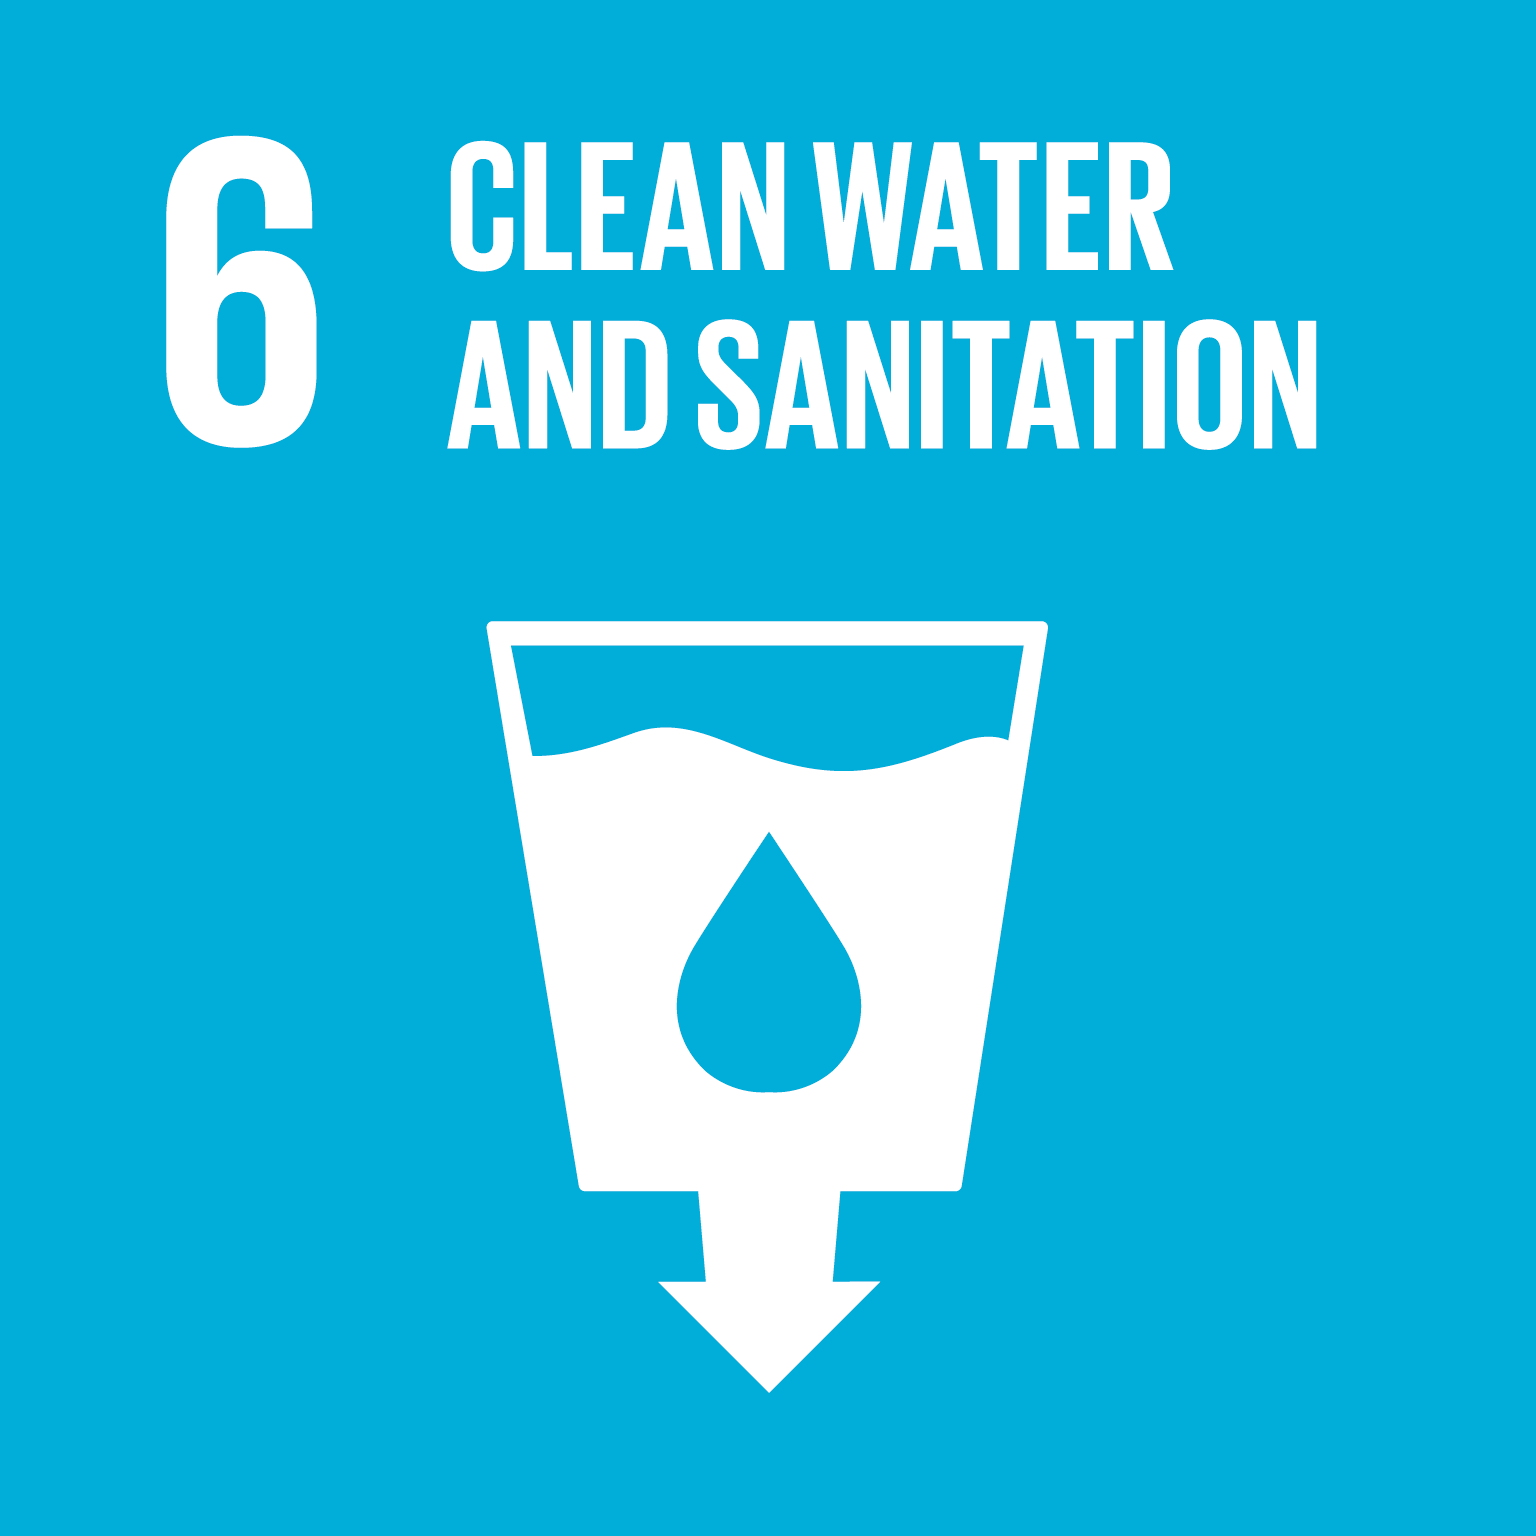 SDG Goal Number 6: Clean Water and Sanitation